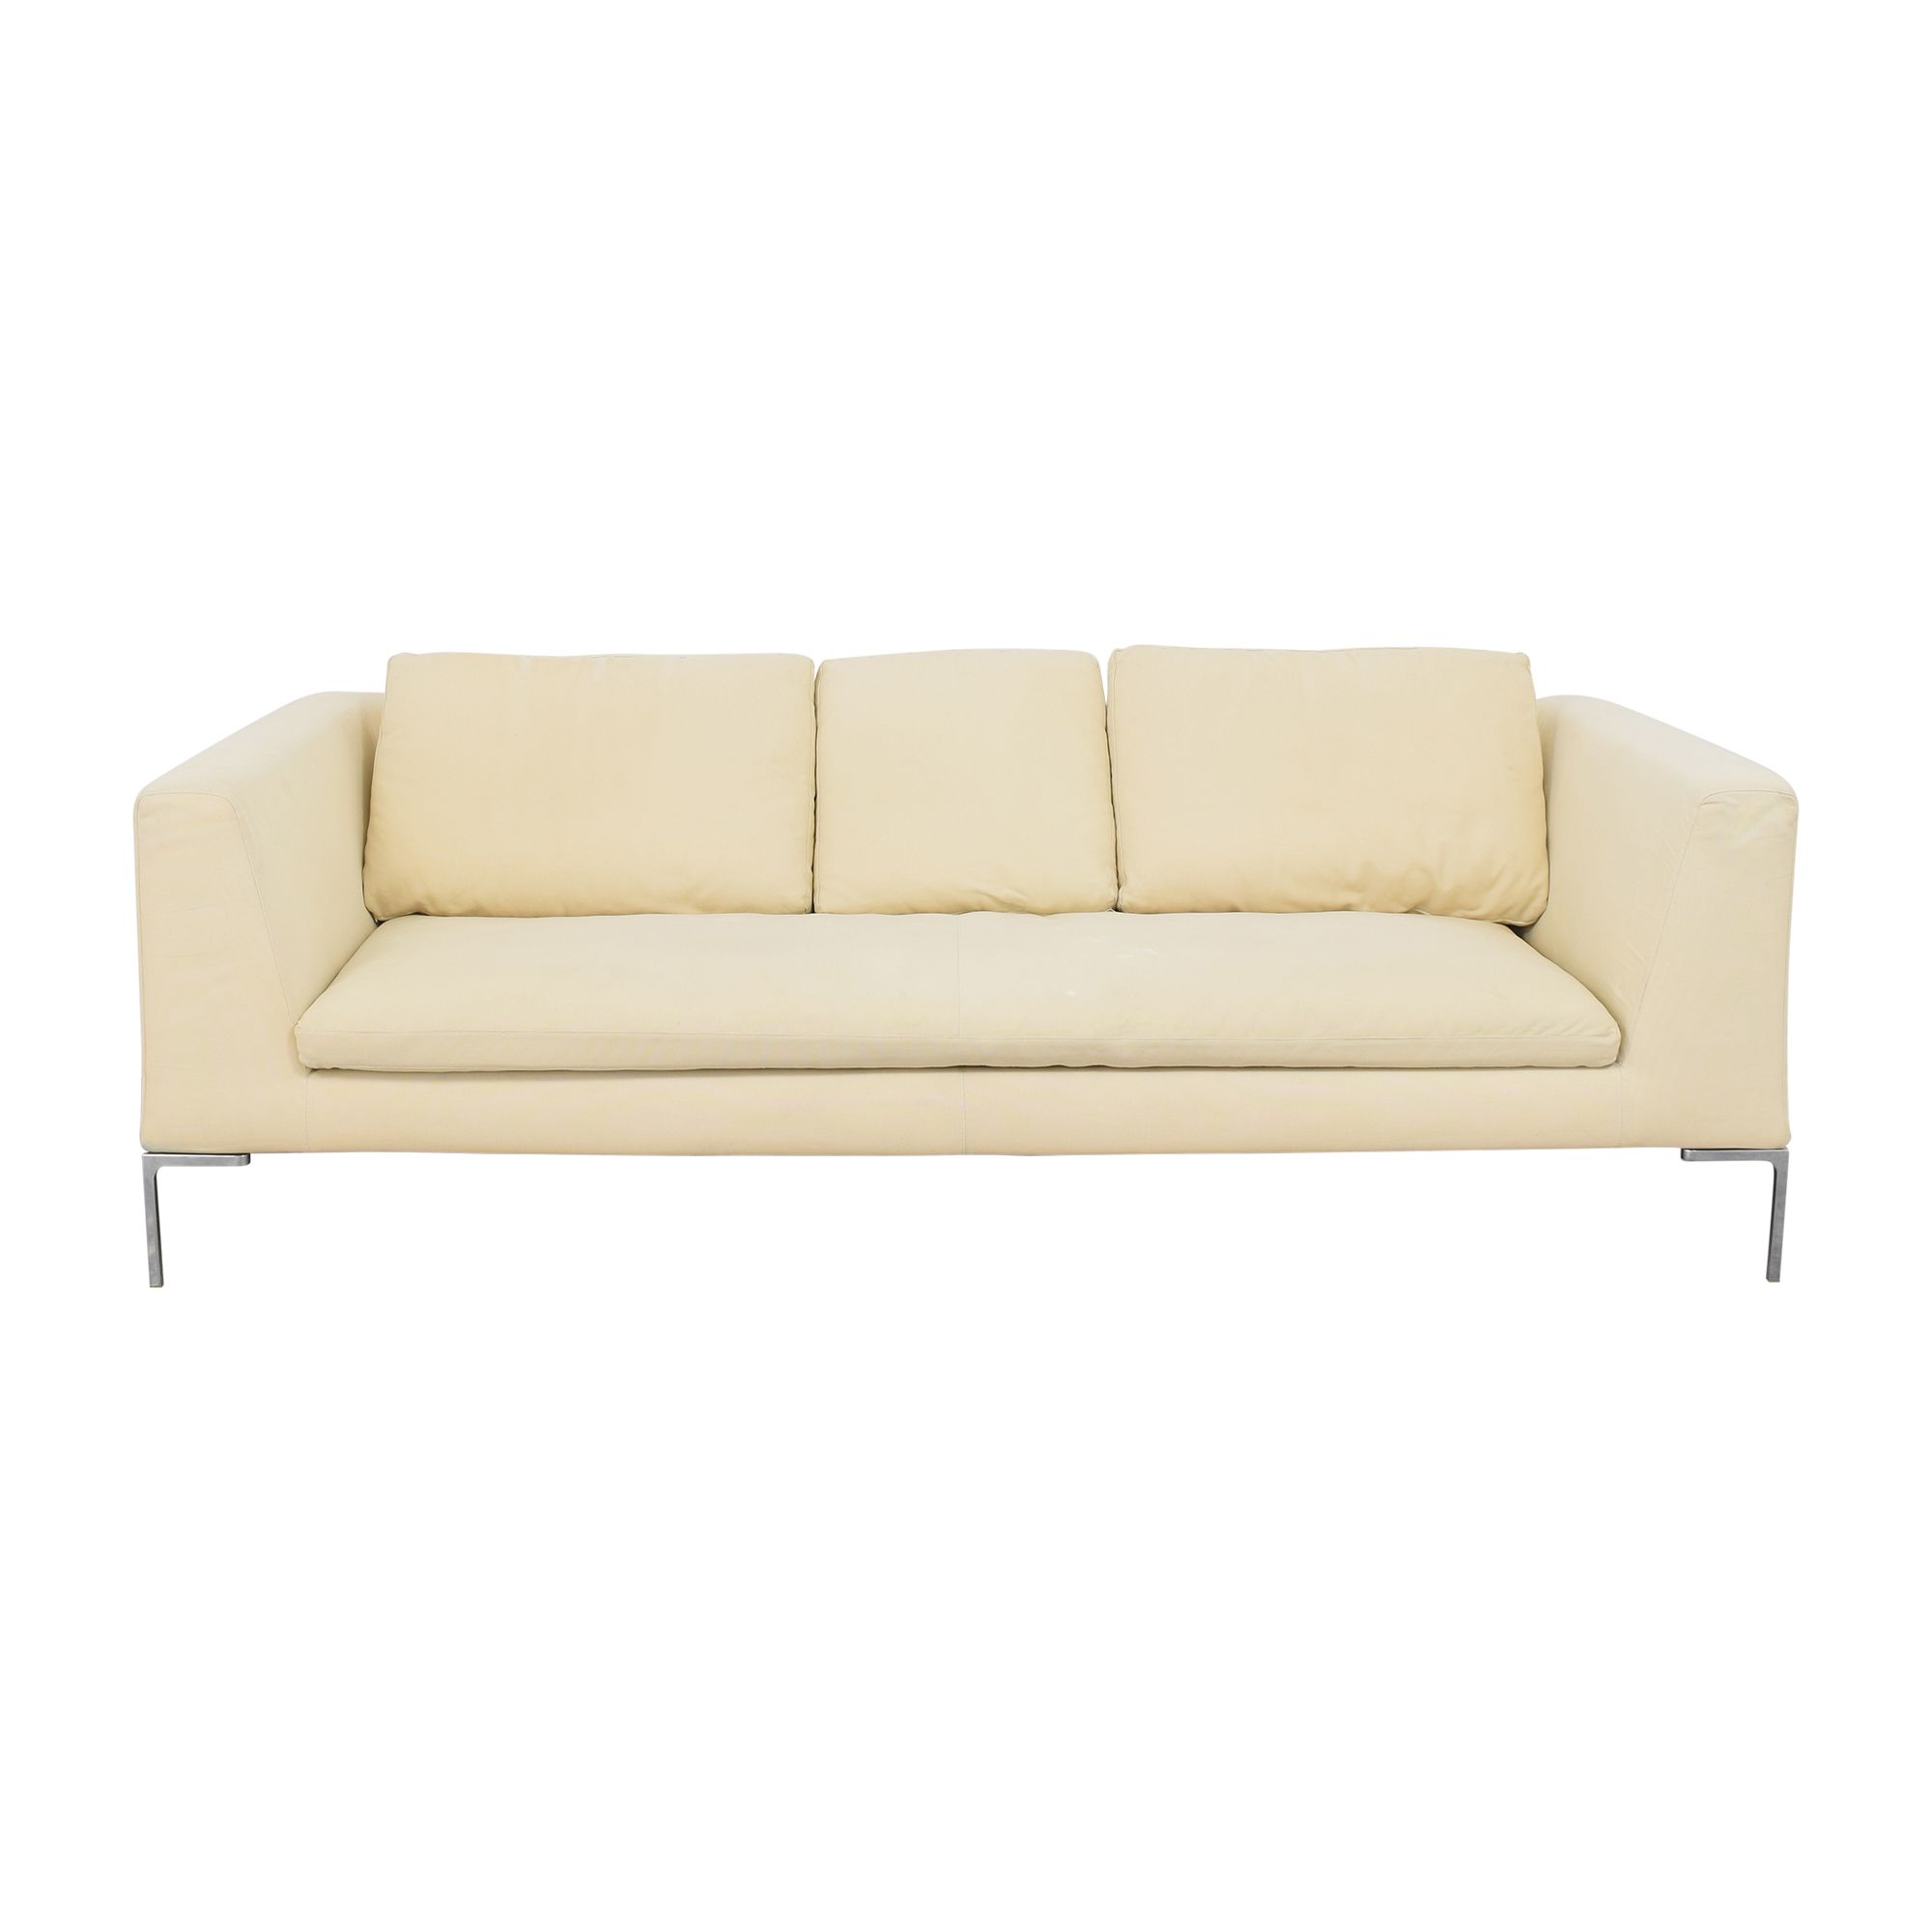 B&B Italia Charles Sofa sale